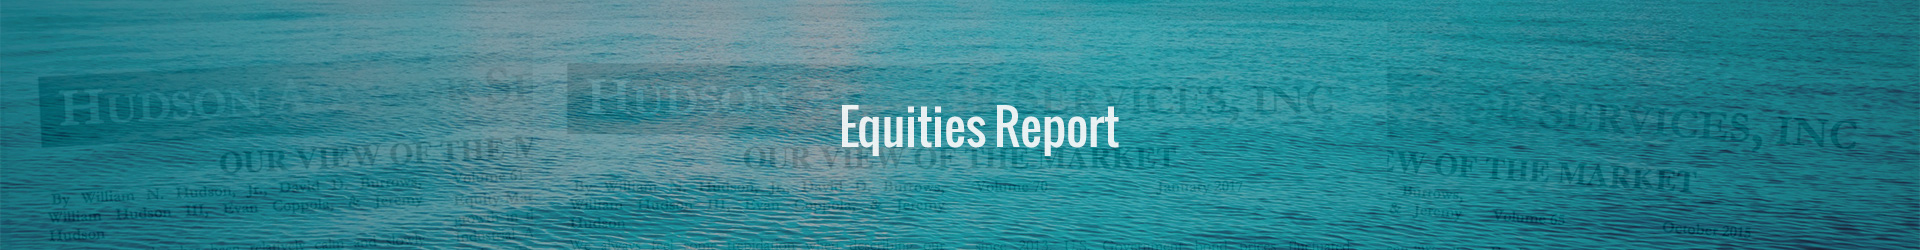 equities report banner